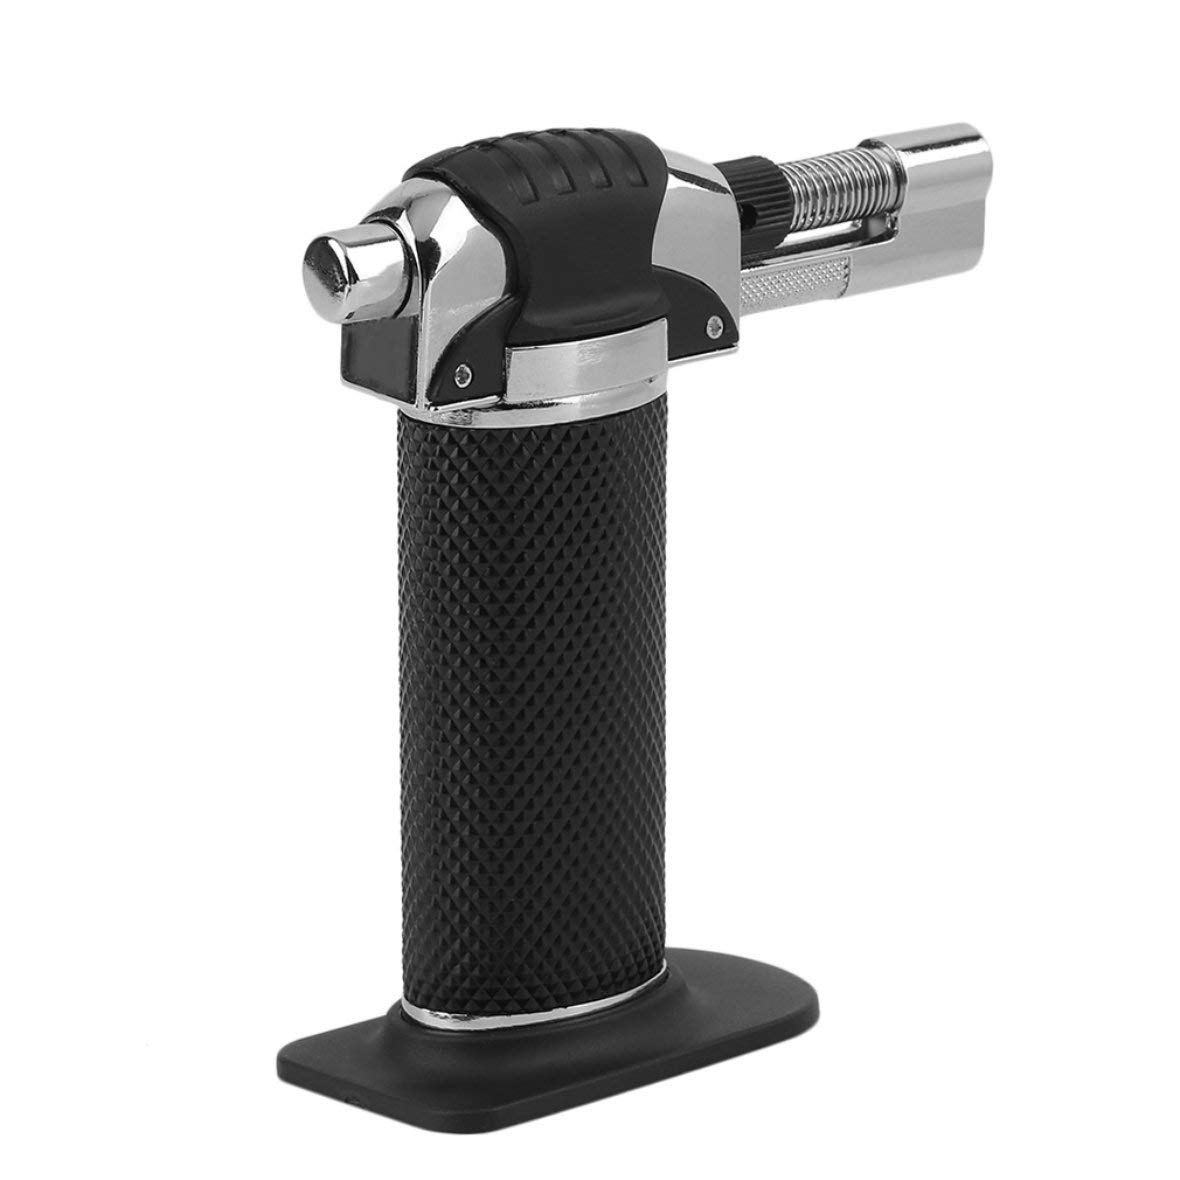 Micro Jet Blow Torch Brazing Soldering Dental Repairs Chef Blowtorch Lighter Welding Industrial Kitchen Cook Tool Black